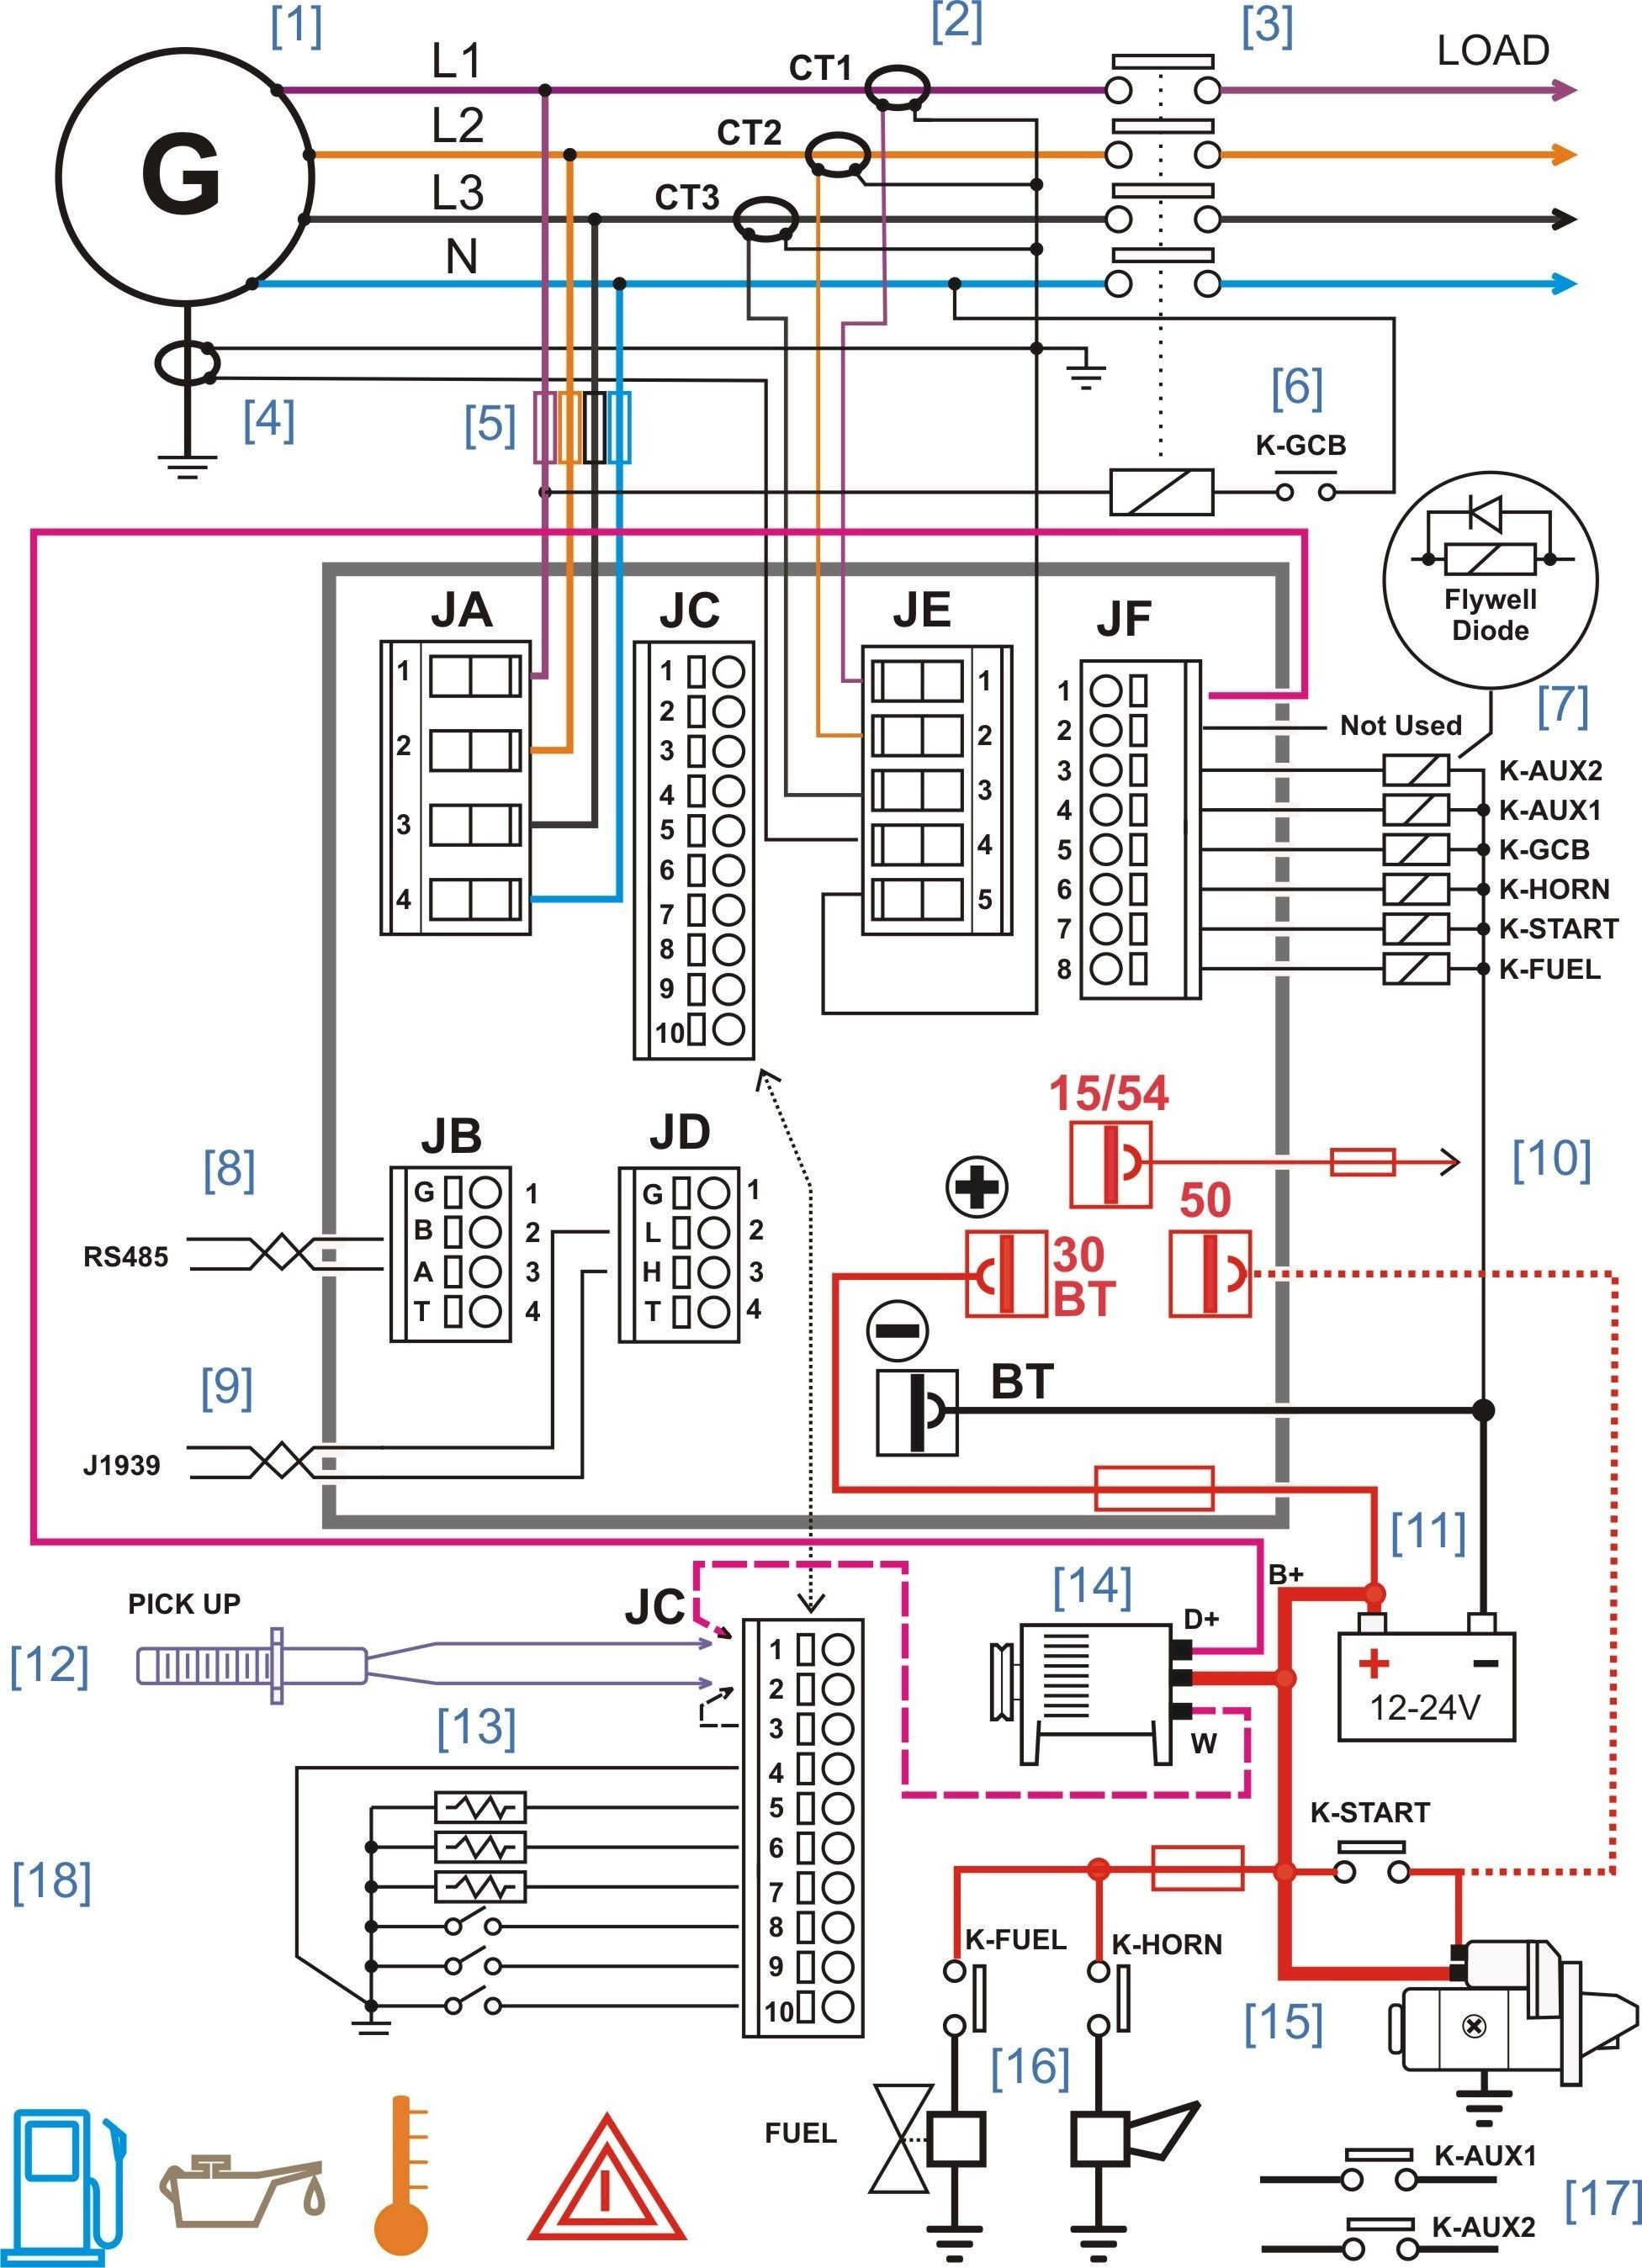 hight resolution of 50 amp transfer switch wiring diagram wiring diagram for 20kw generac generator inspirationa wiring diagram